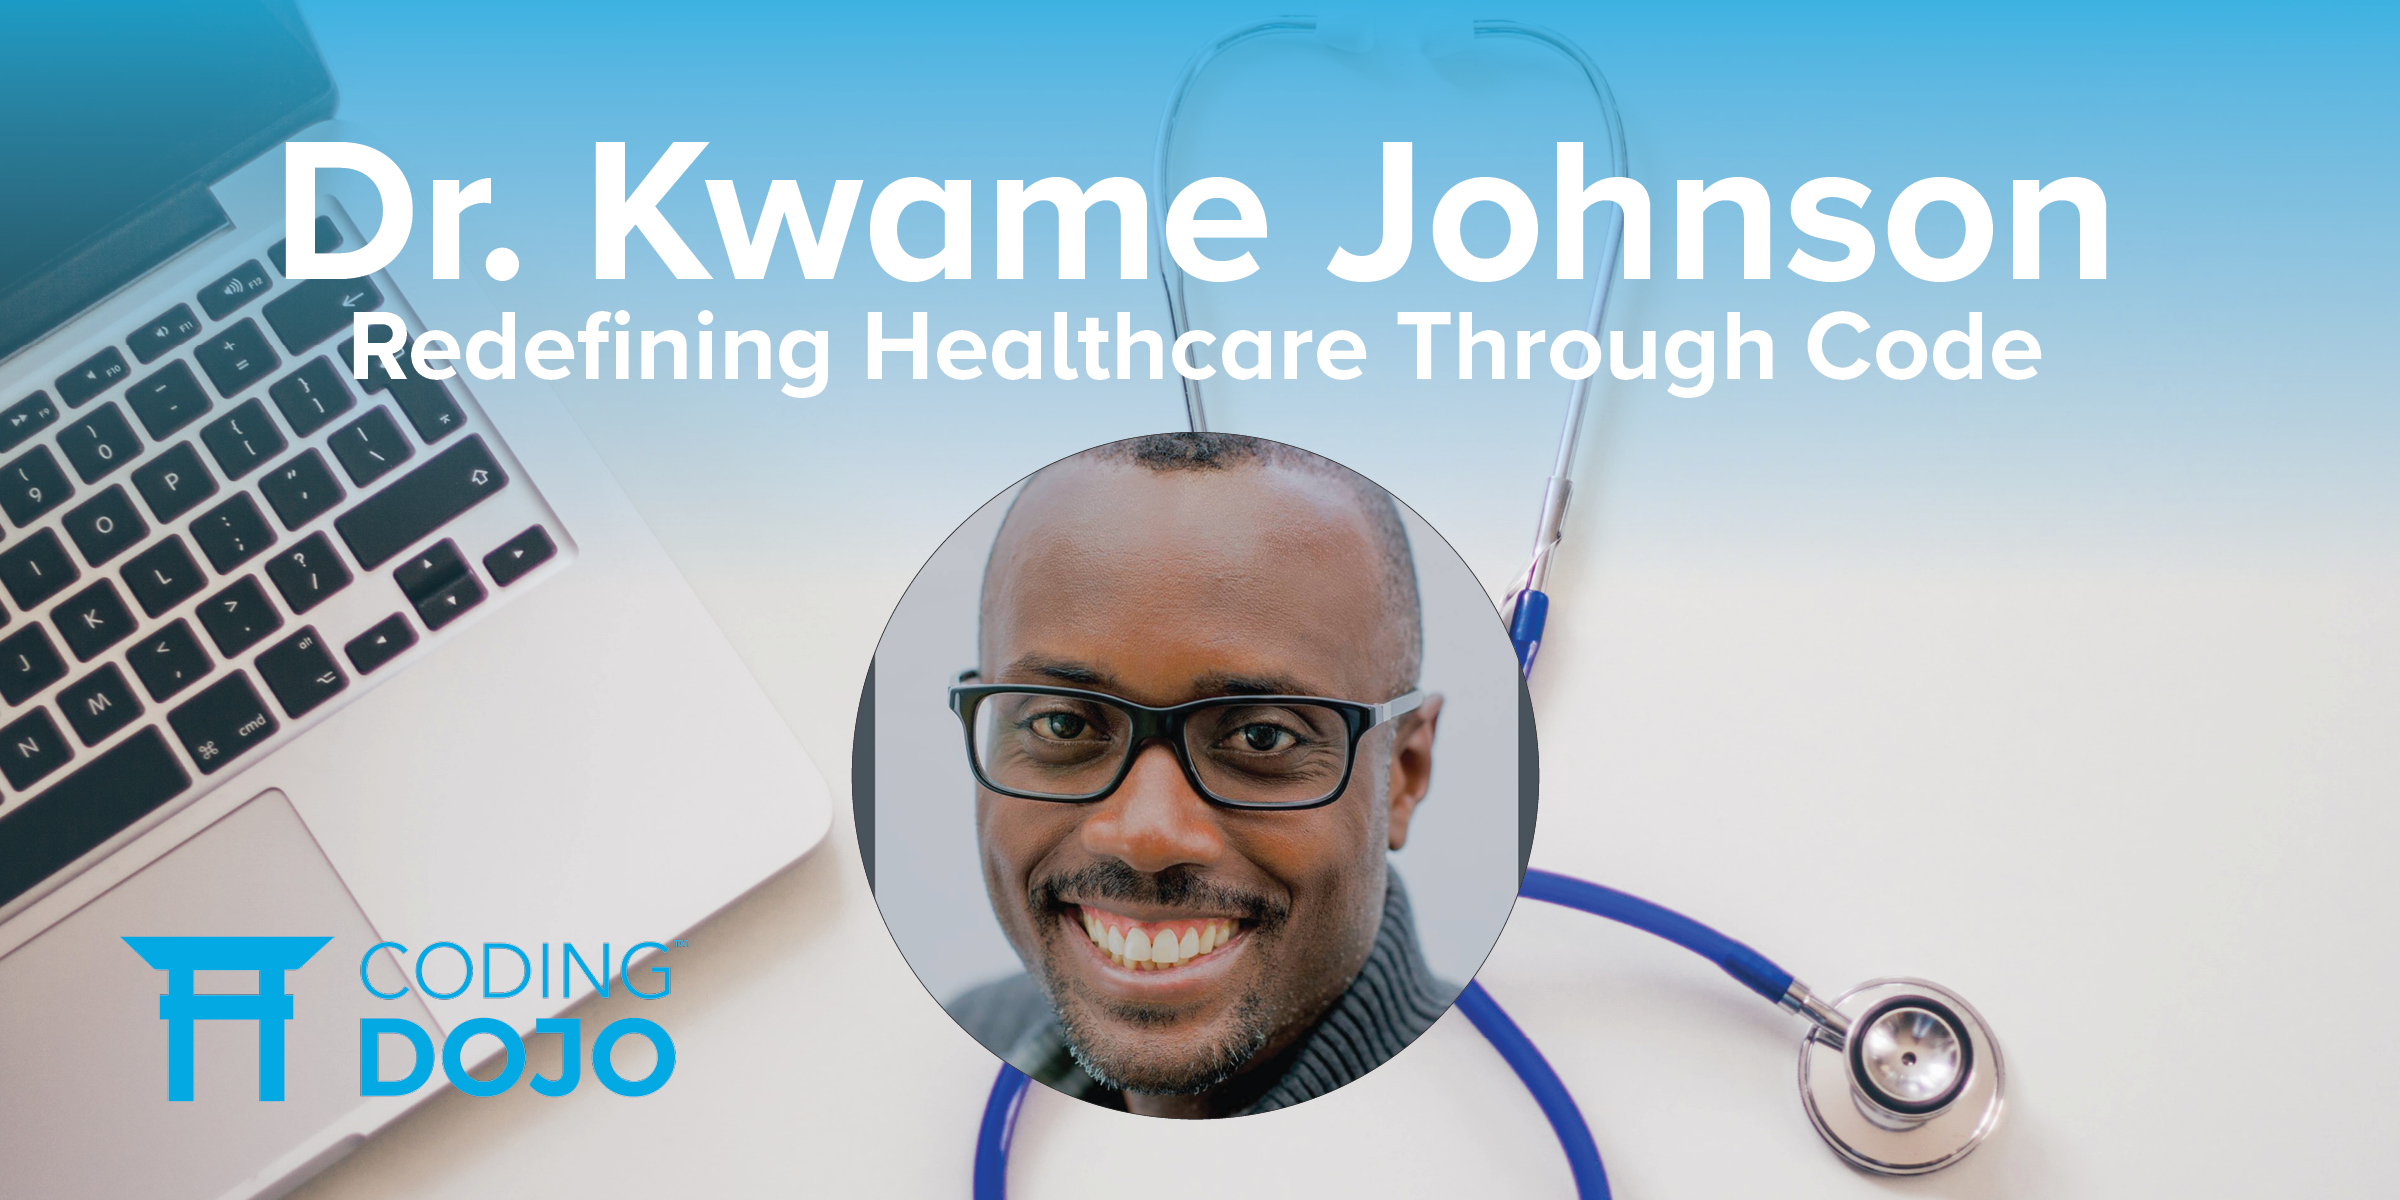 From Doctorate to Dojo: Redefining Healthcare Through Code